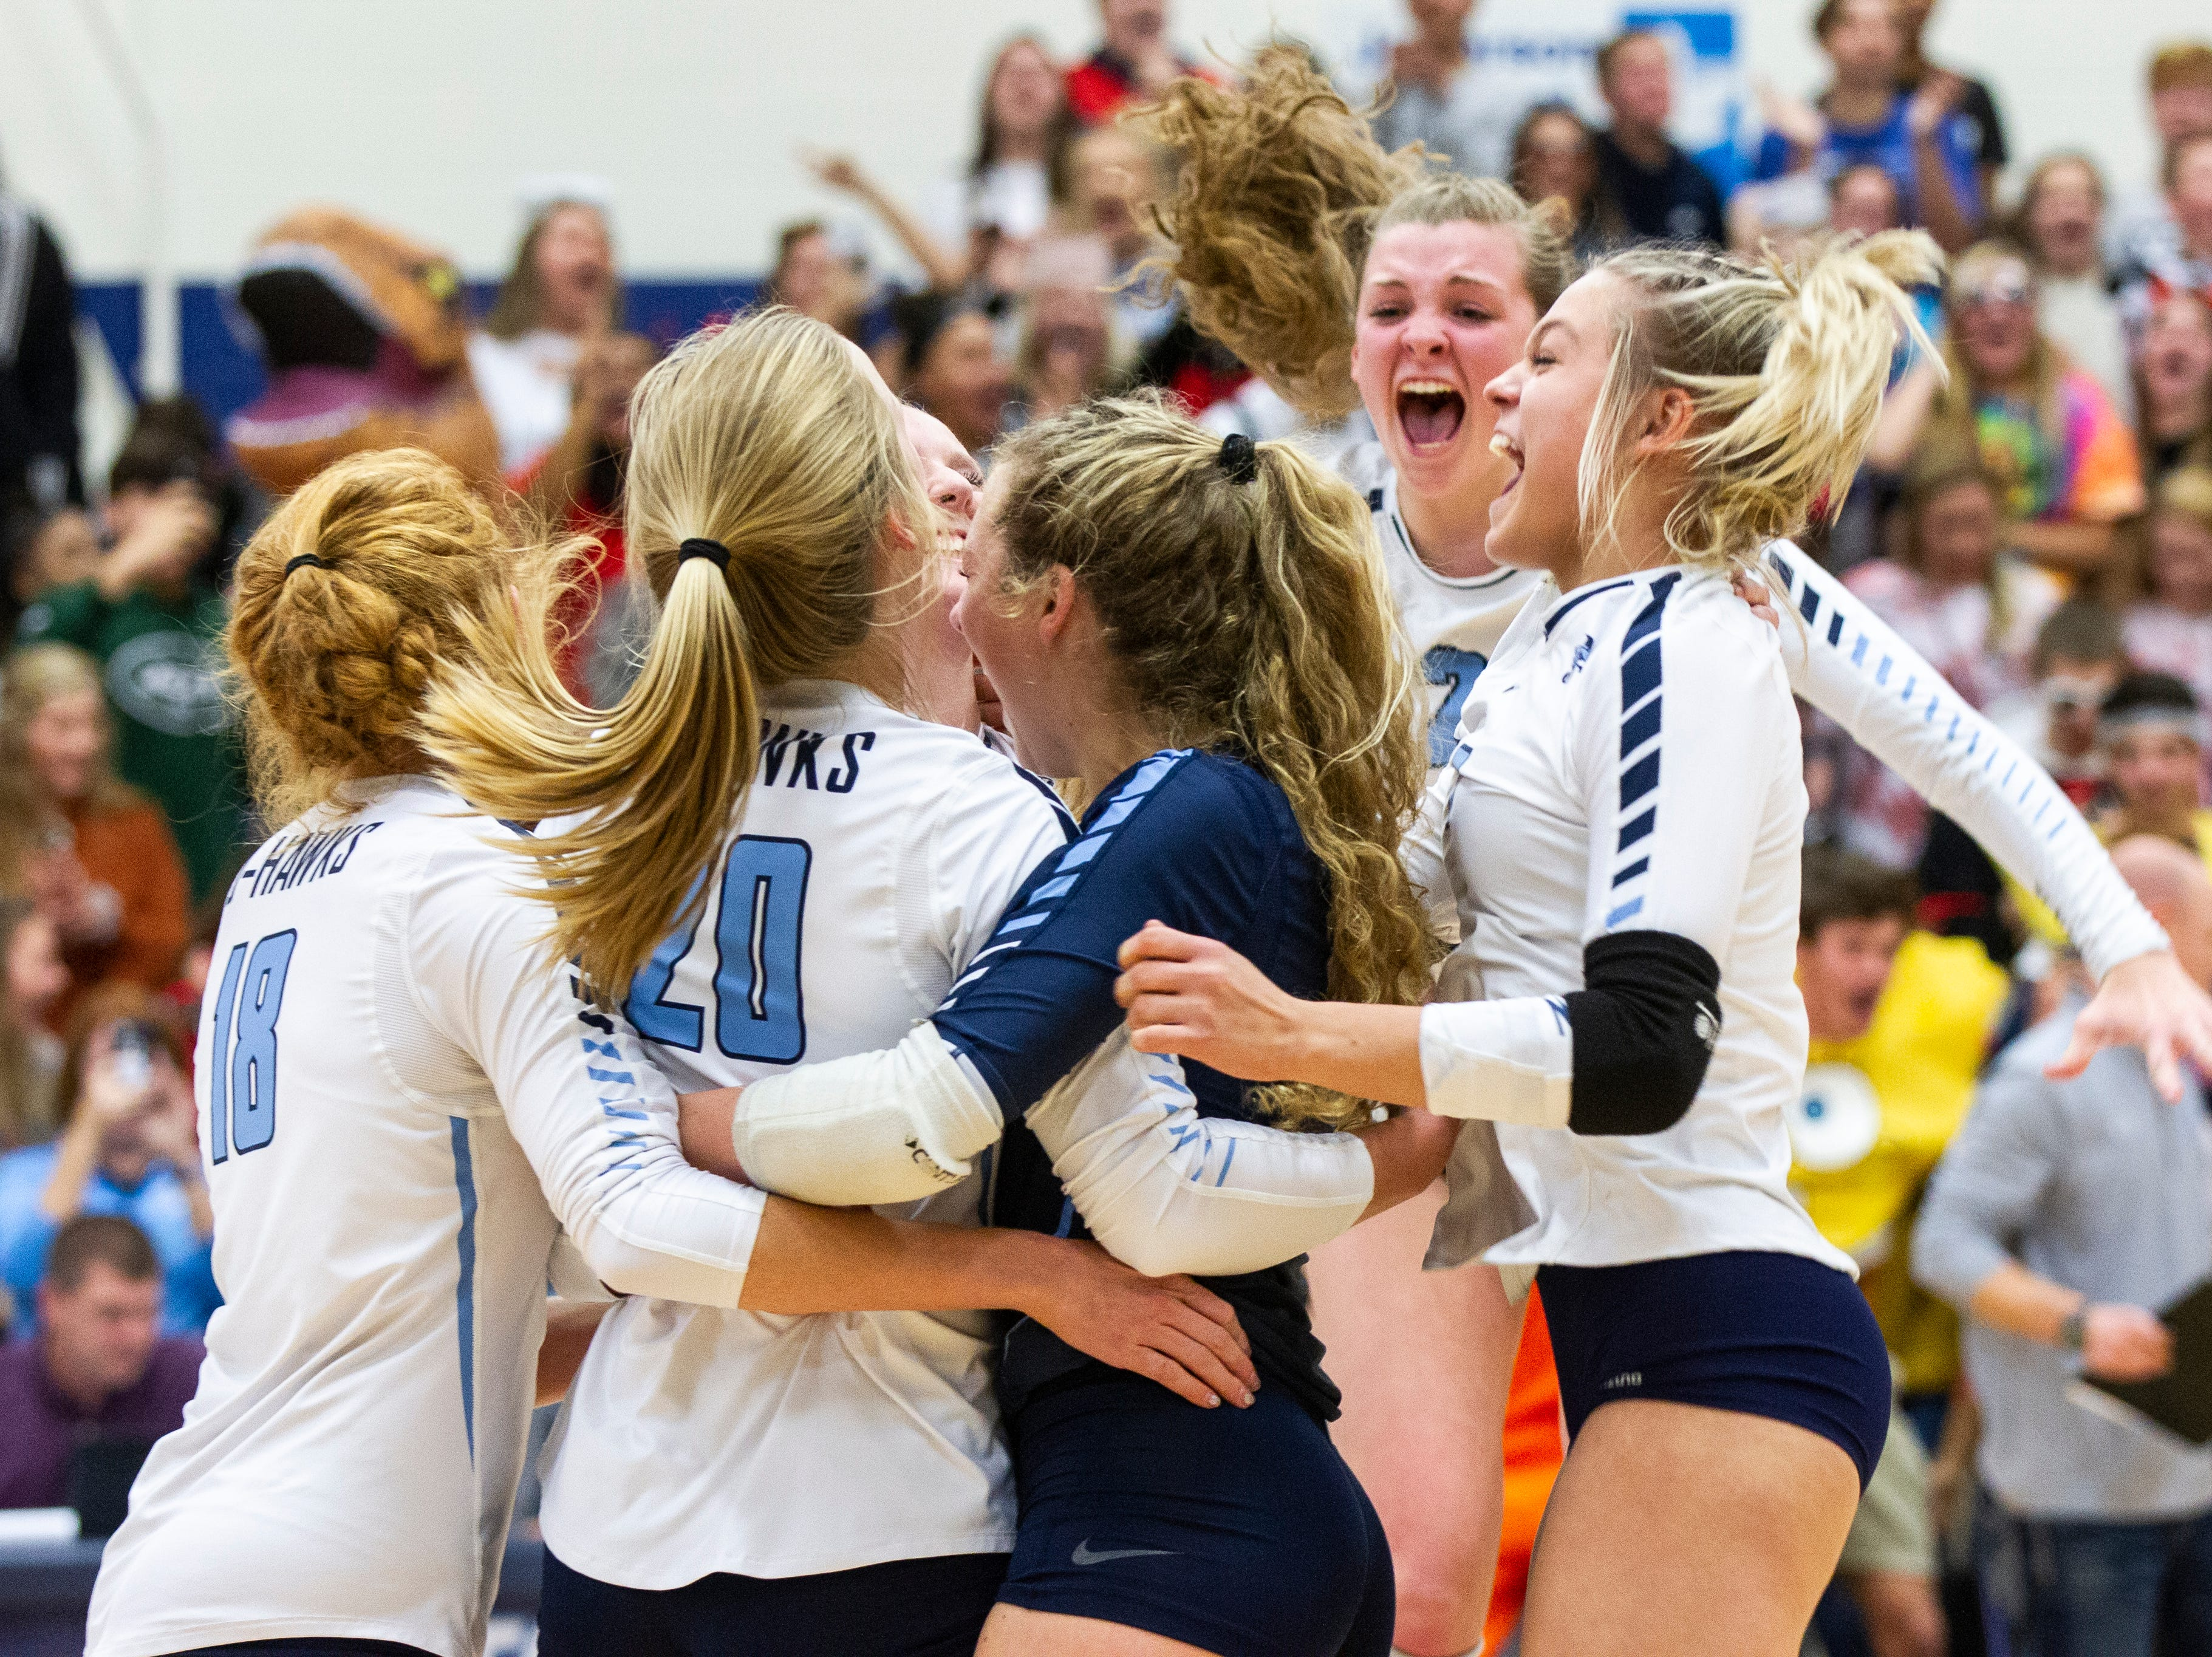 Cedar Rapids Jefferson's Maggie Peters (18) Maddy Baxter (3) Kaylee Donner (10) Sydney Kloubec (21) and Allie Krousie (7) celebrate winning a final point after a Class 5A volleyball regional final game on Monday, Oct. 29, 2018, at Jefferson High School in Cedar Rapids.